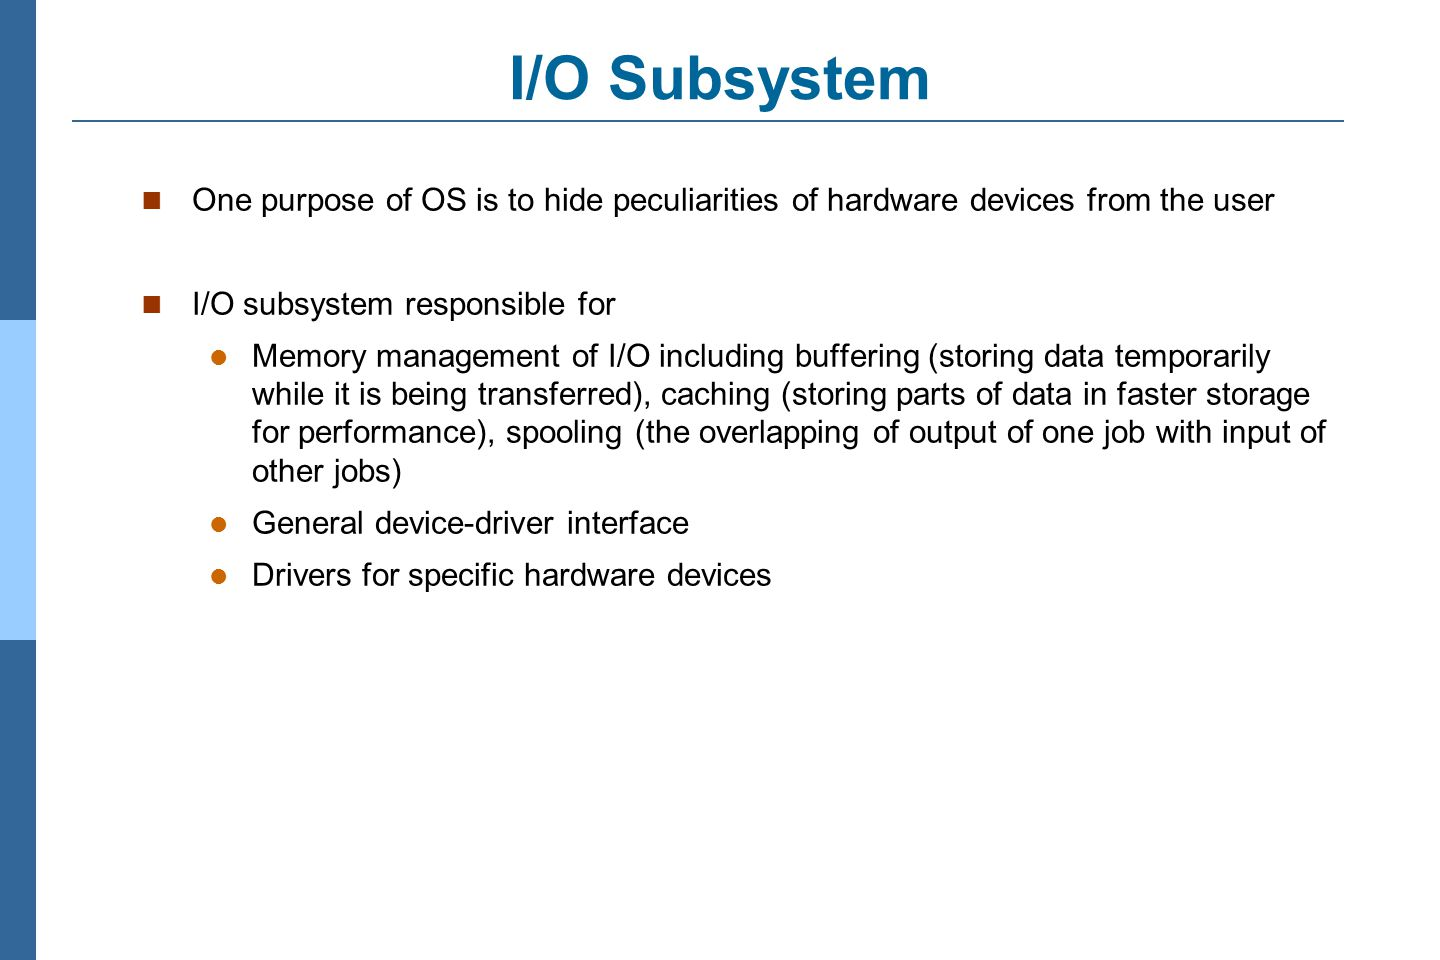 3.7 Silberschatz, Galvin and Gagne ©2011 Operating System Concepts Essentials – 8 th Edition I/O Subsystem One purpose of OS is to hide peculiarities of hardware devices from the user I/O subsystem responsible for Memory management of I/O including buffering (storing data temporarily while it is being transferred), caching (storing parts of data in faster storage for performance), spooling (the overlapping of output of one job with input of other jobs) General device-driver interface Drivers for specific hardware devices